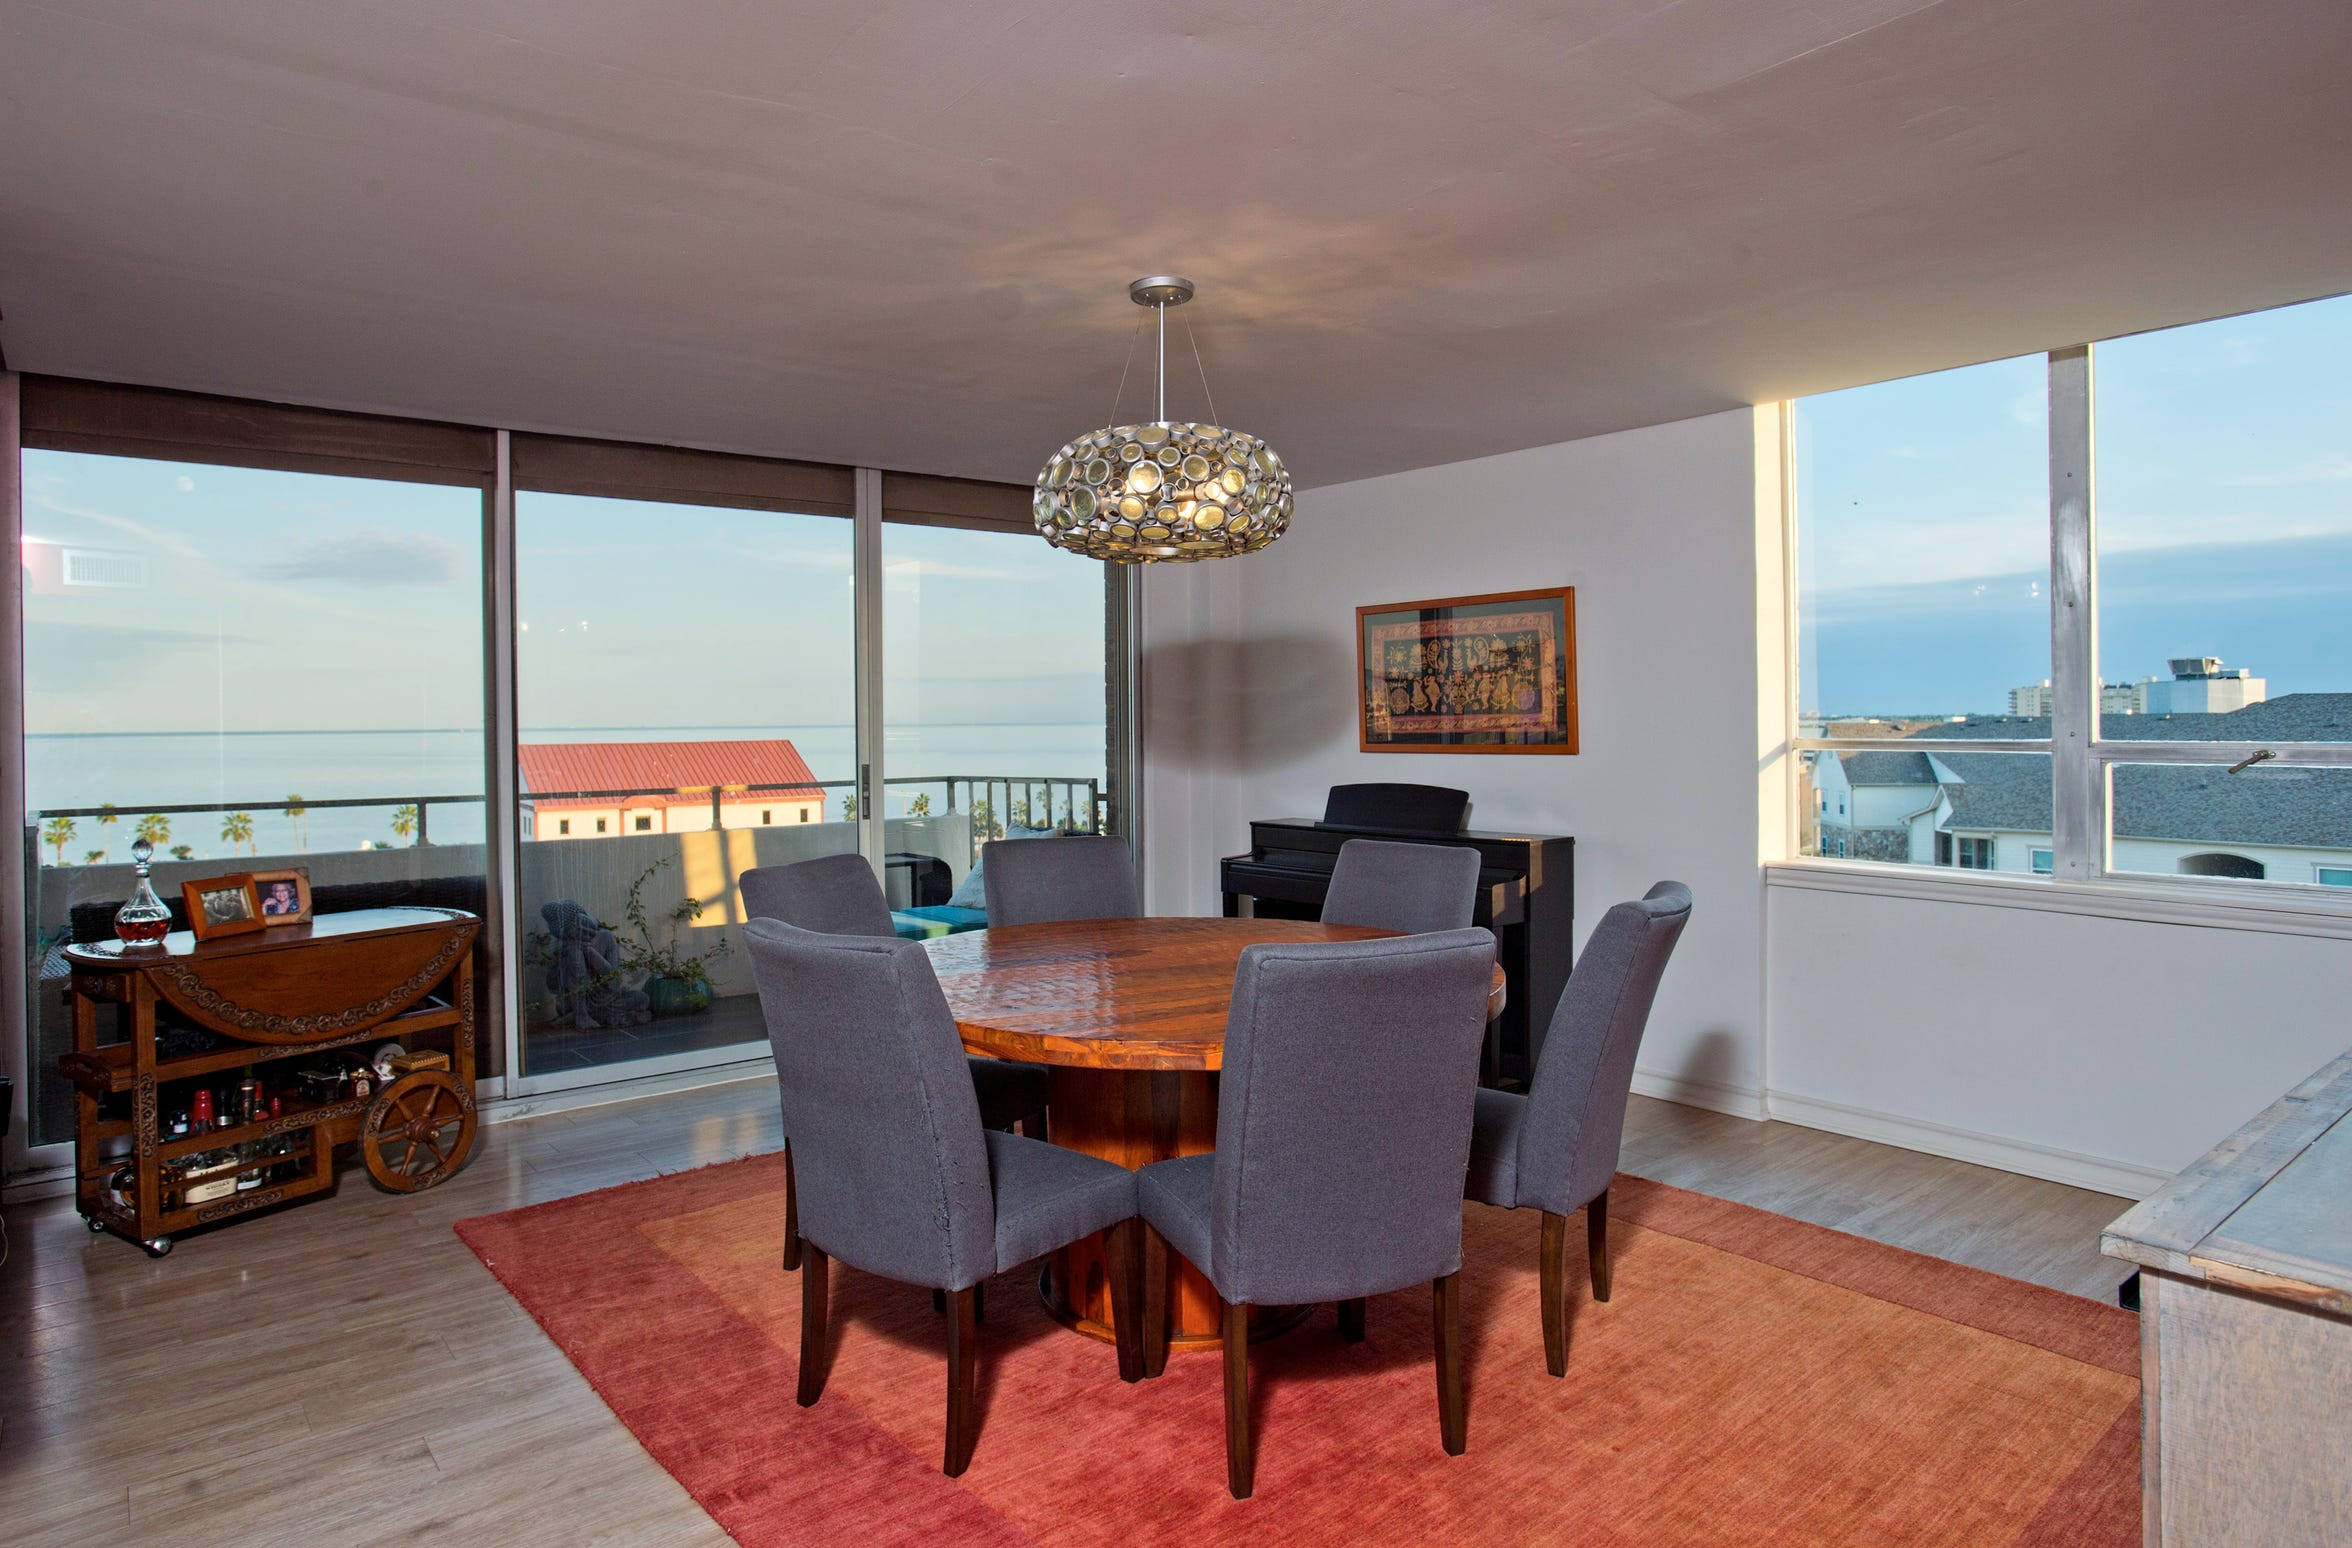 The dining area commands the southern corner of the condo space with beautiful panoramic bay views